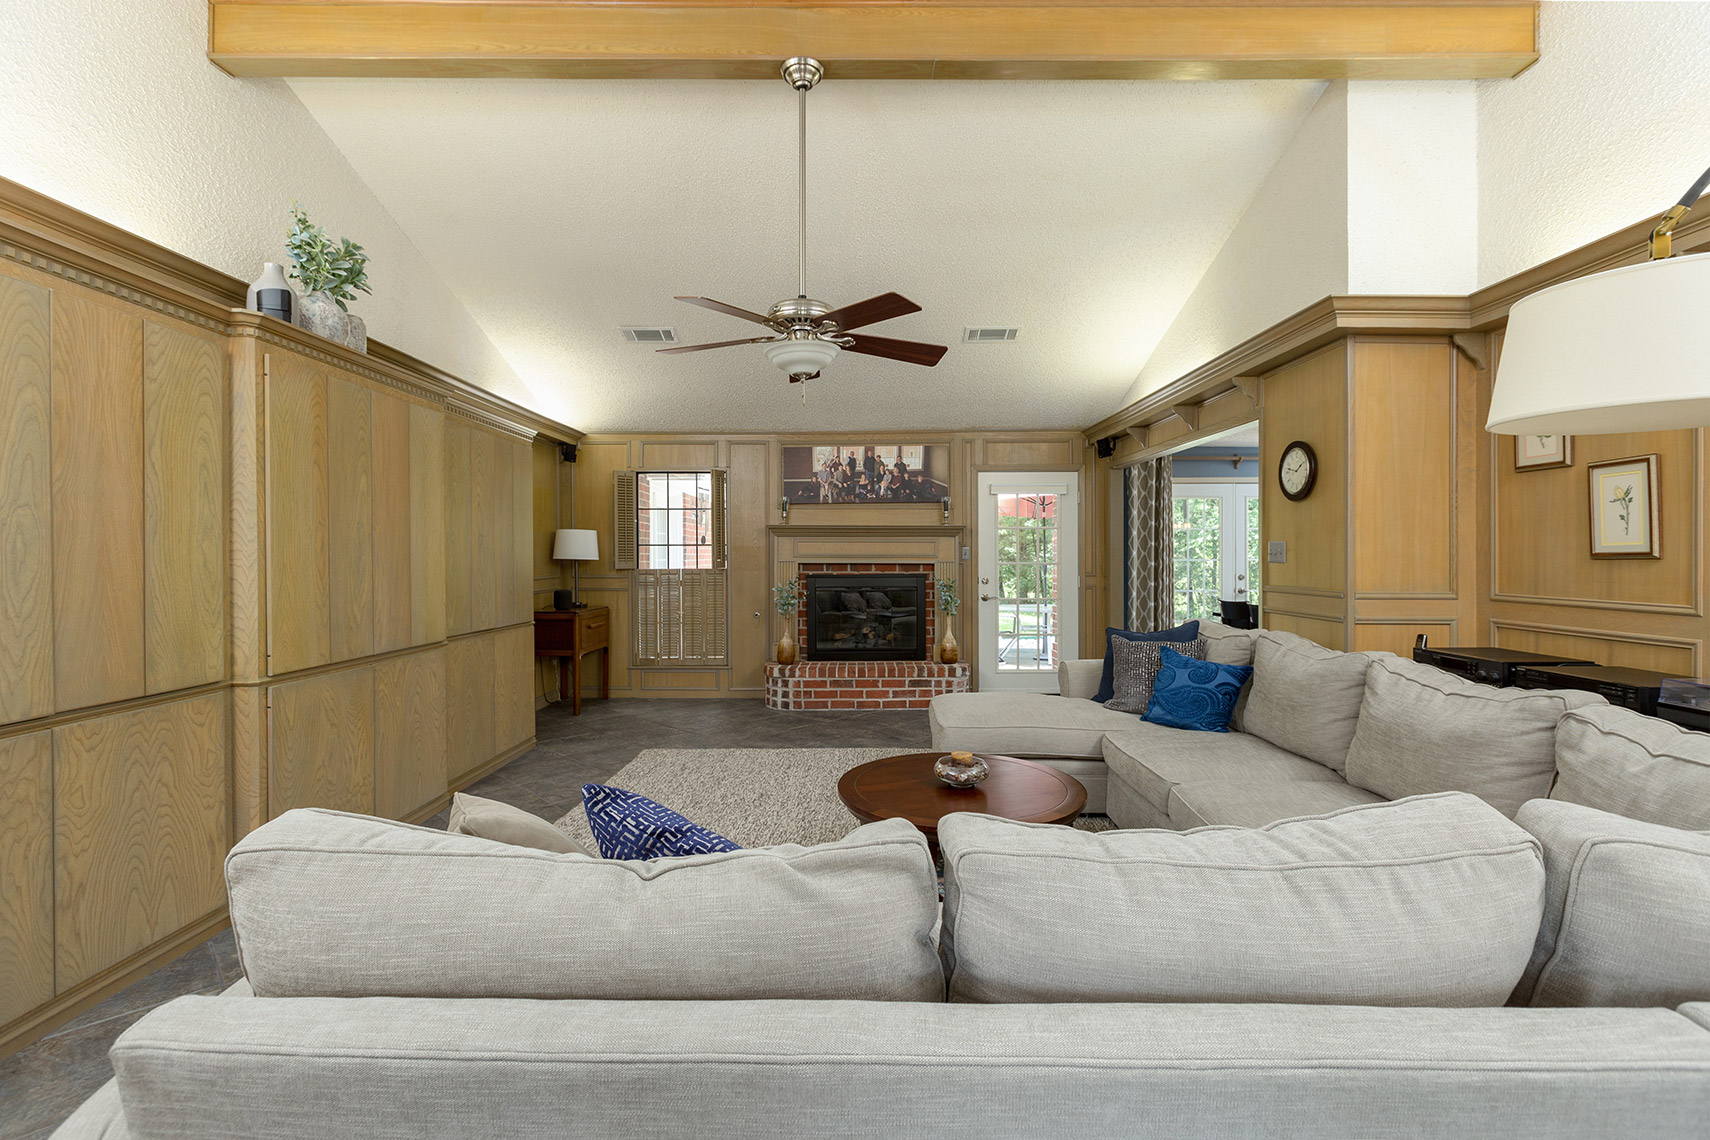 Living-room-with-custom-wood-cabinets-and-paneling